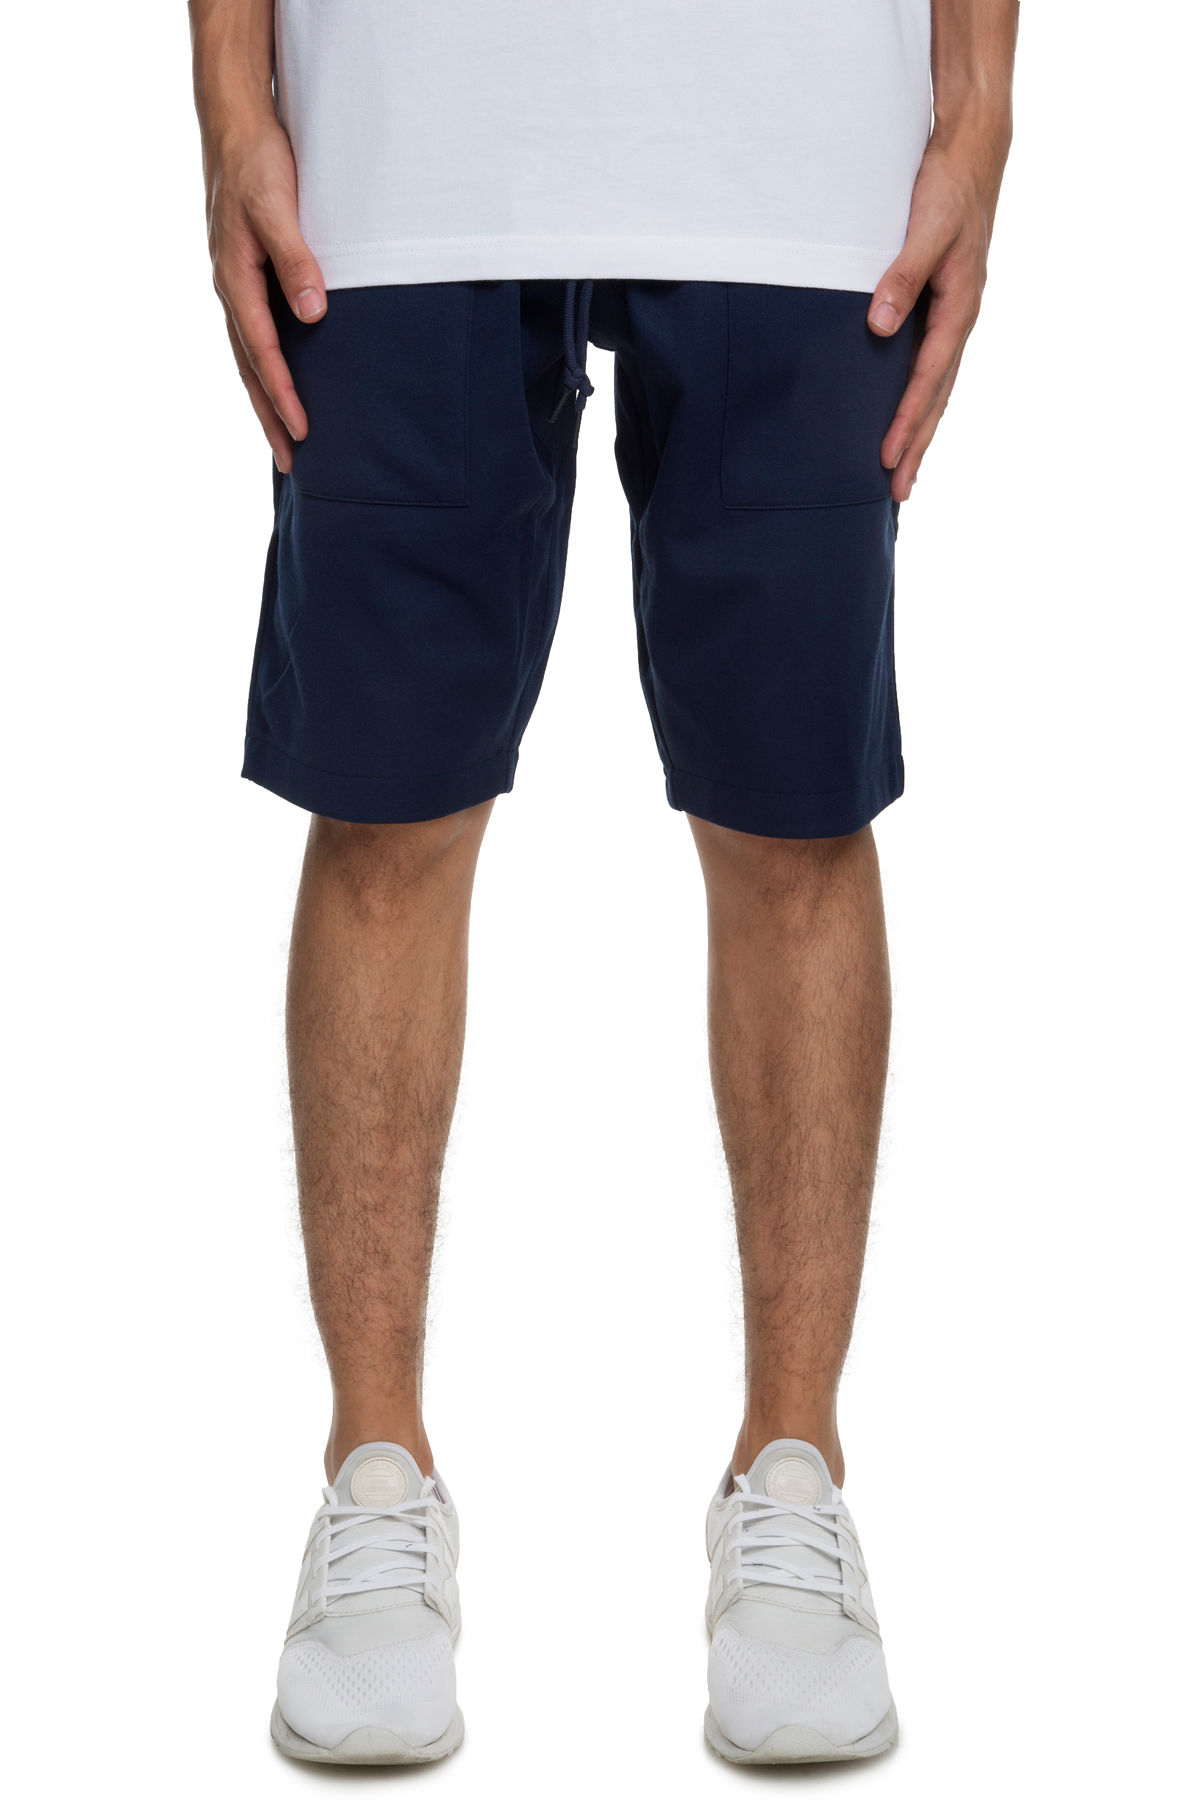 The Gym Rat Shorts in Peacoat